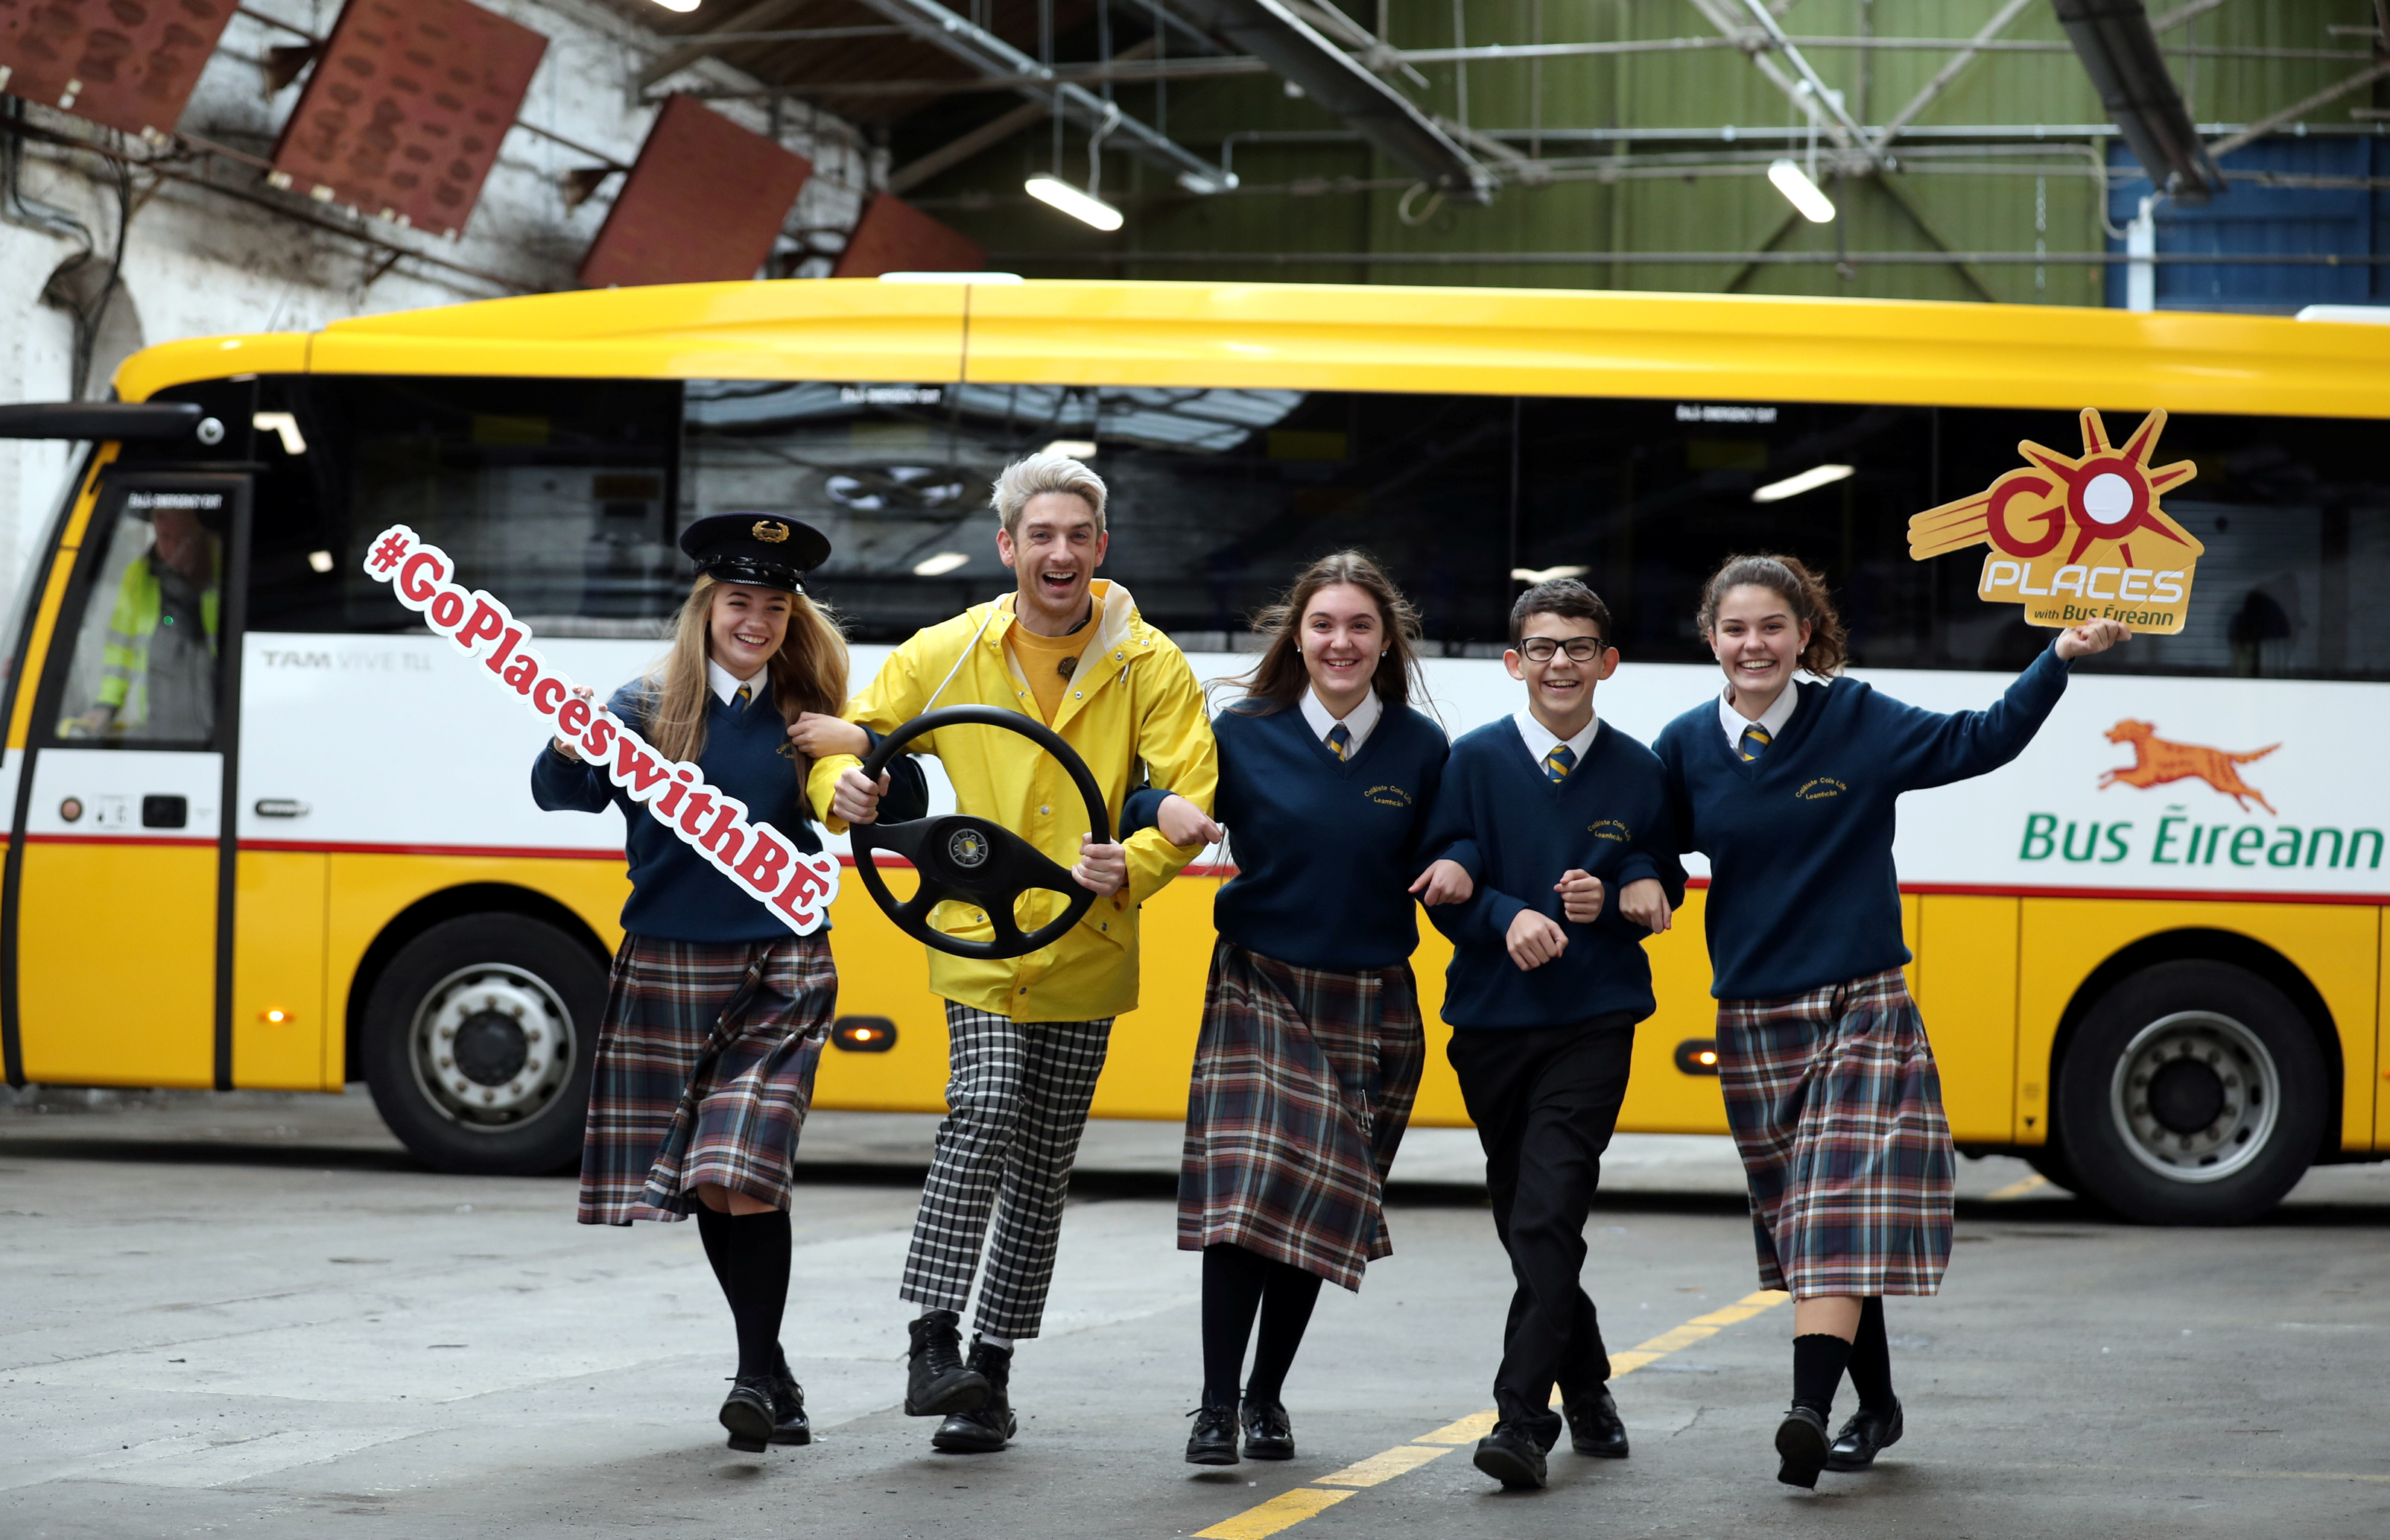 Galway TY students invited to take part in nationwide Bus Éireann competition